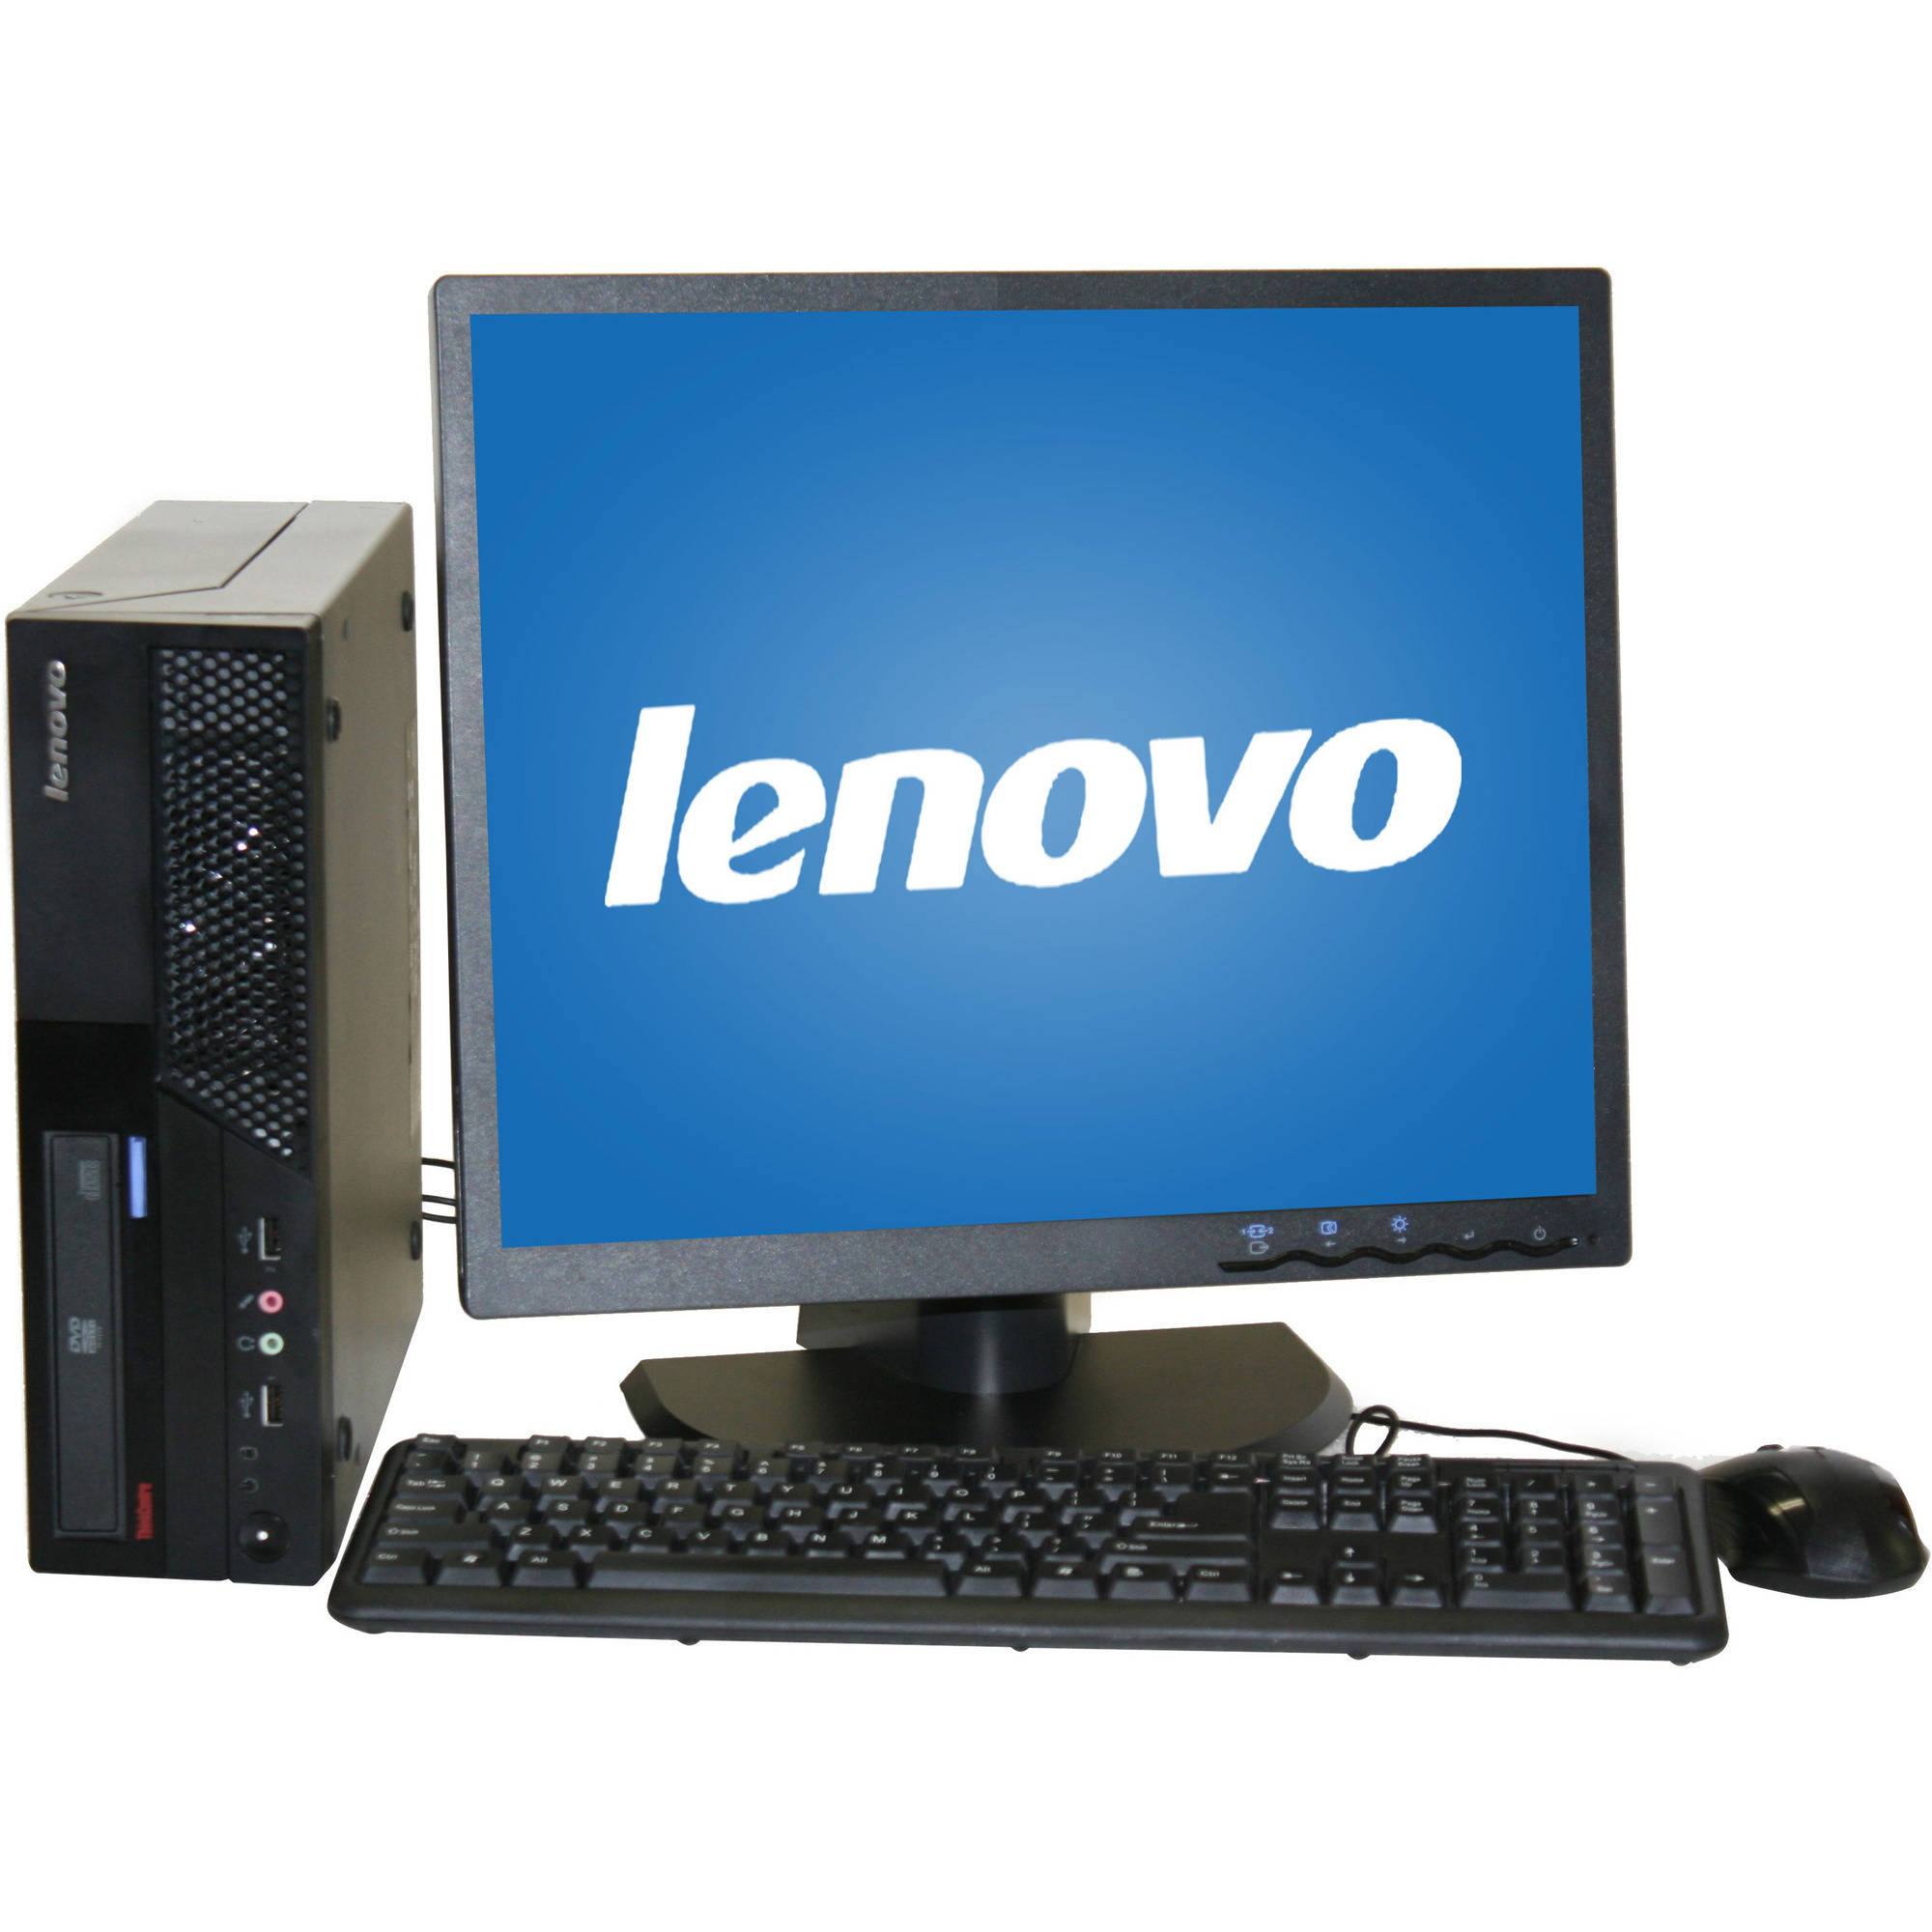 "Refurbished Lenovo M58 Desktop PC with Intel Core 2 Duo Processor, 4GB Memory, 19"" Monitor, 160GB Hard Drive and Windows 10 Home"